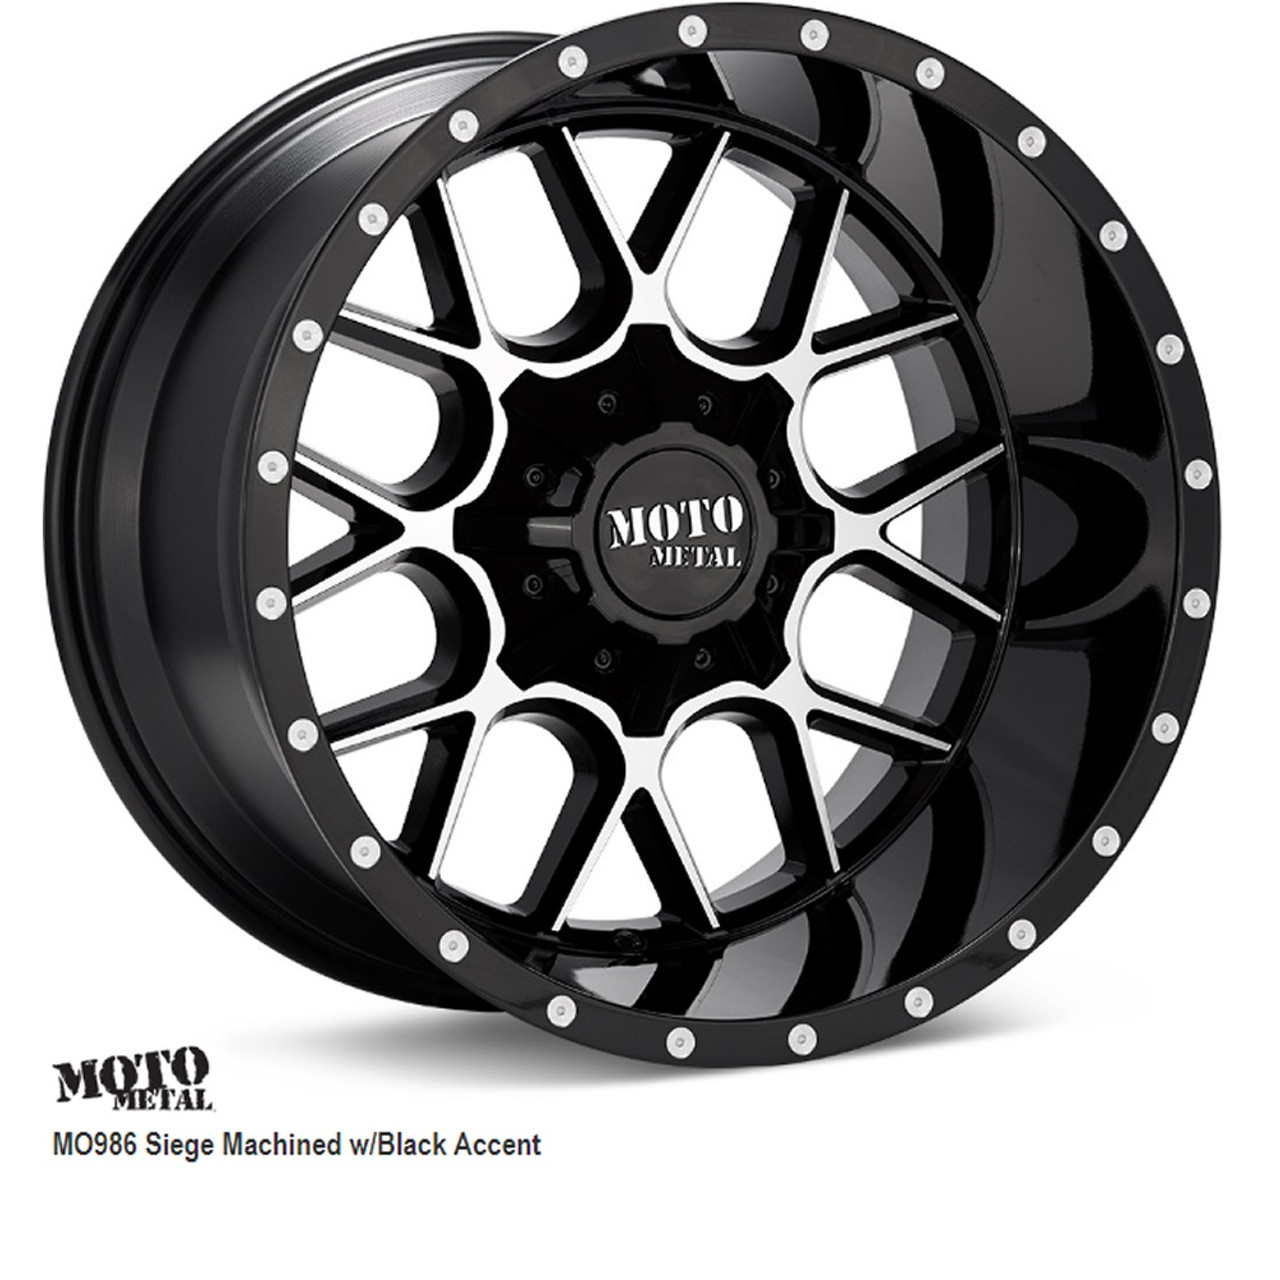 """Wheel & Tire Package Deal, MO986 MOTO METAL, 22"""" x 12"""" 8on 180, + TIRES"""